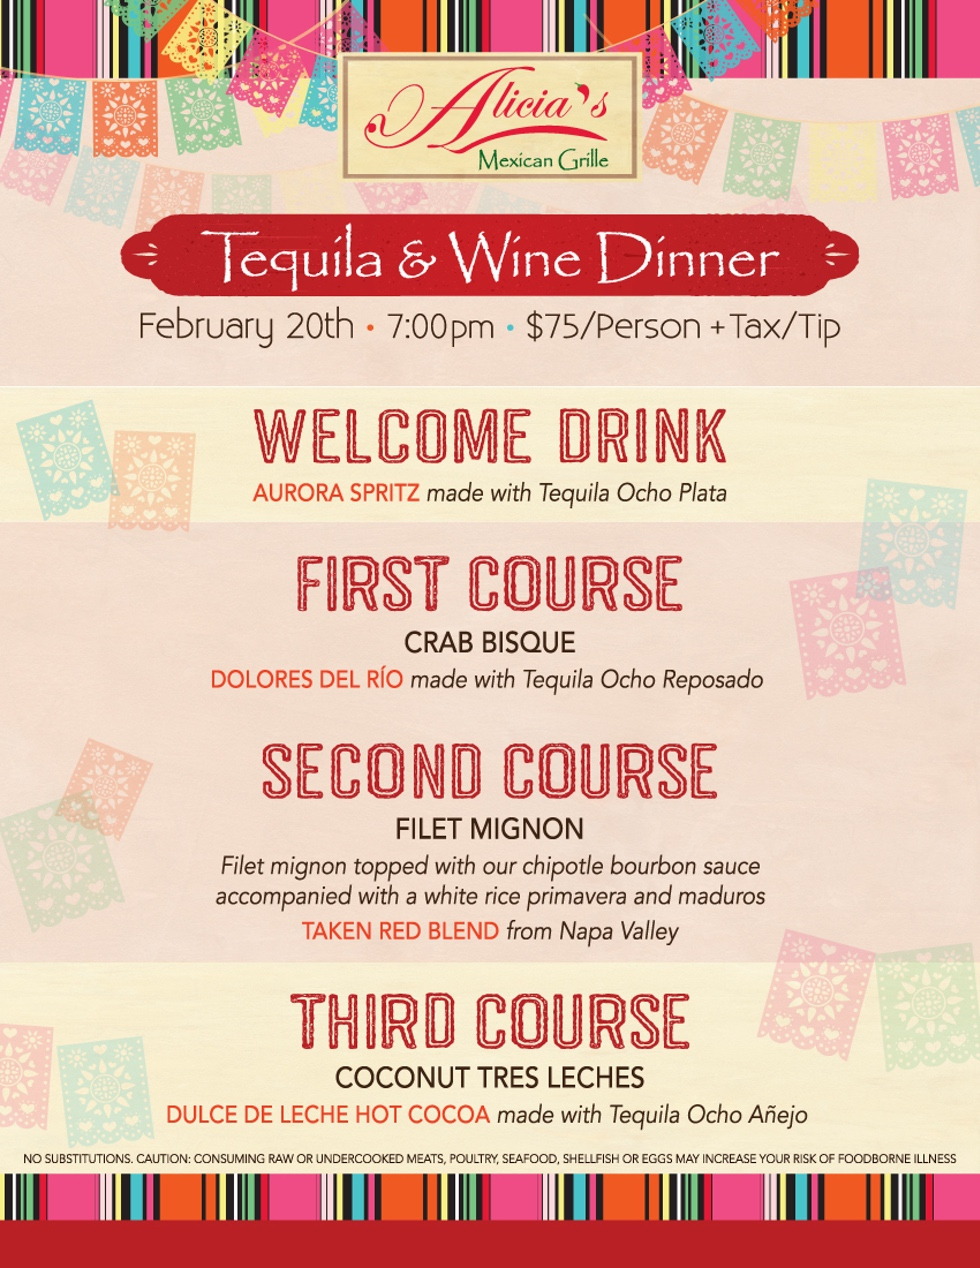 Alicia's Tequila Dinner at Sugar Land on February 20th